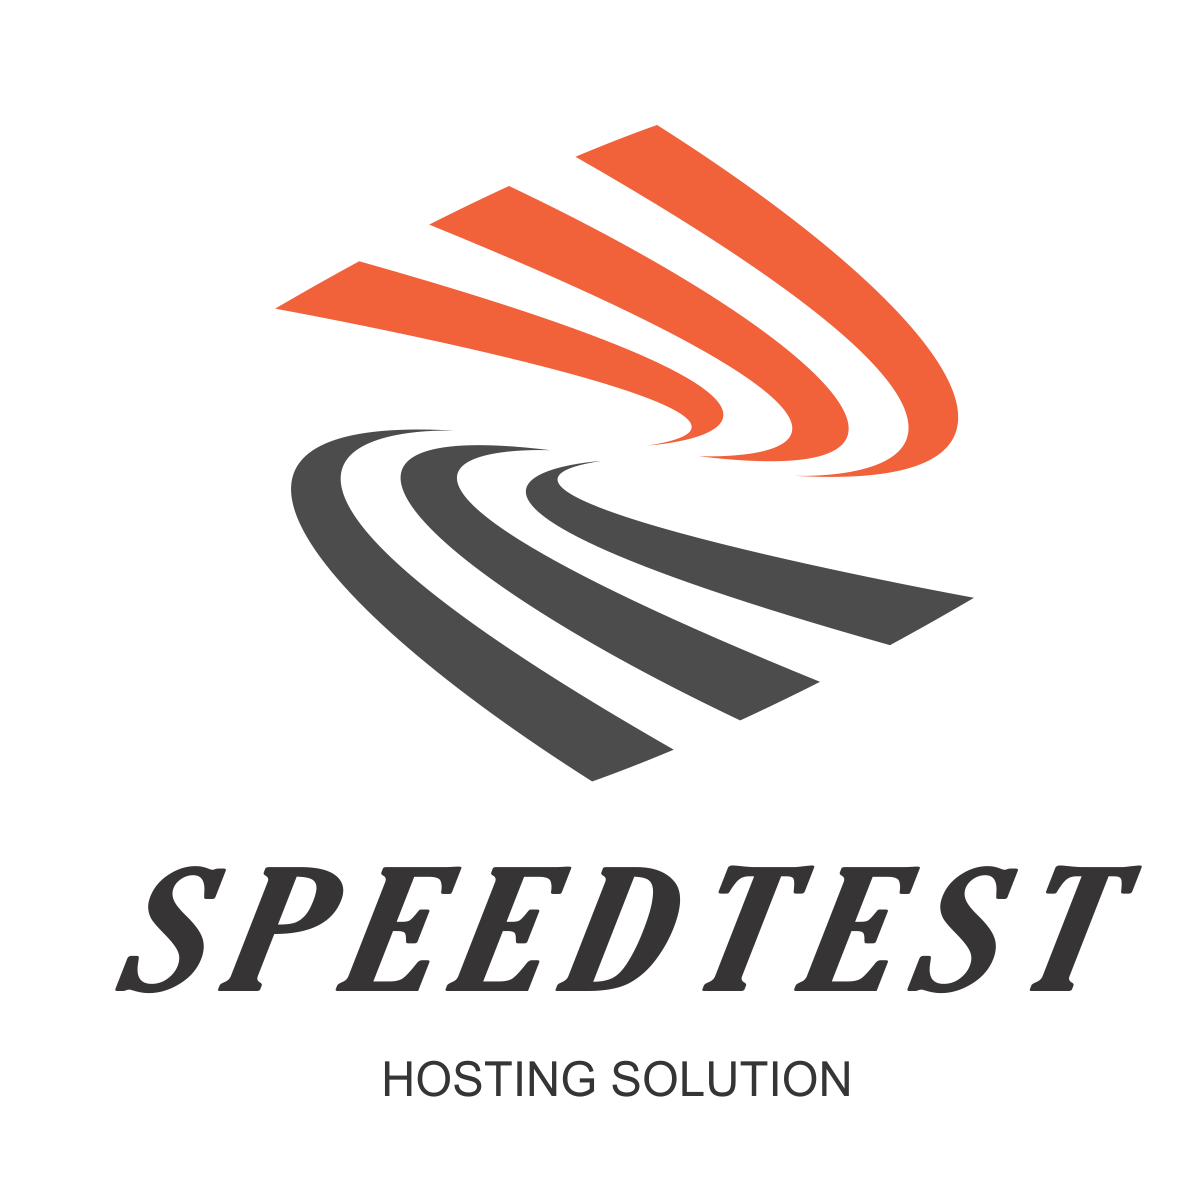 SpeedTestMK